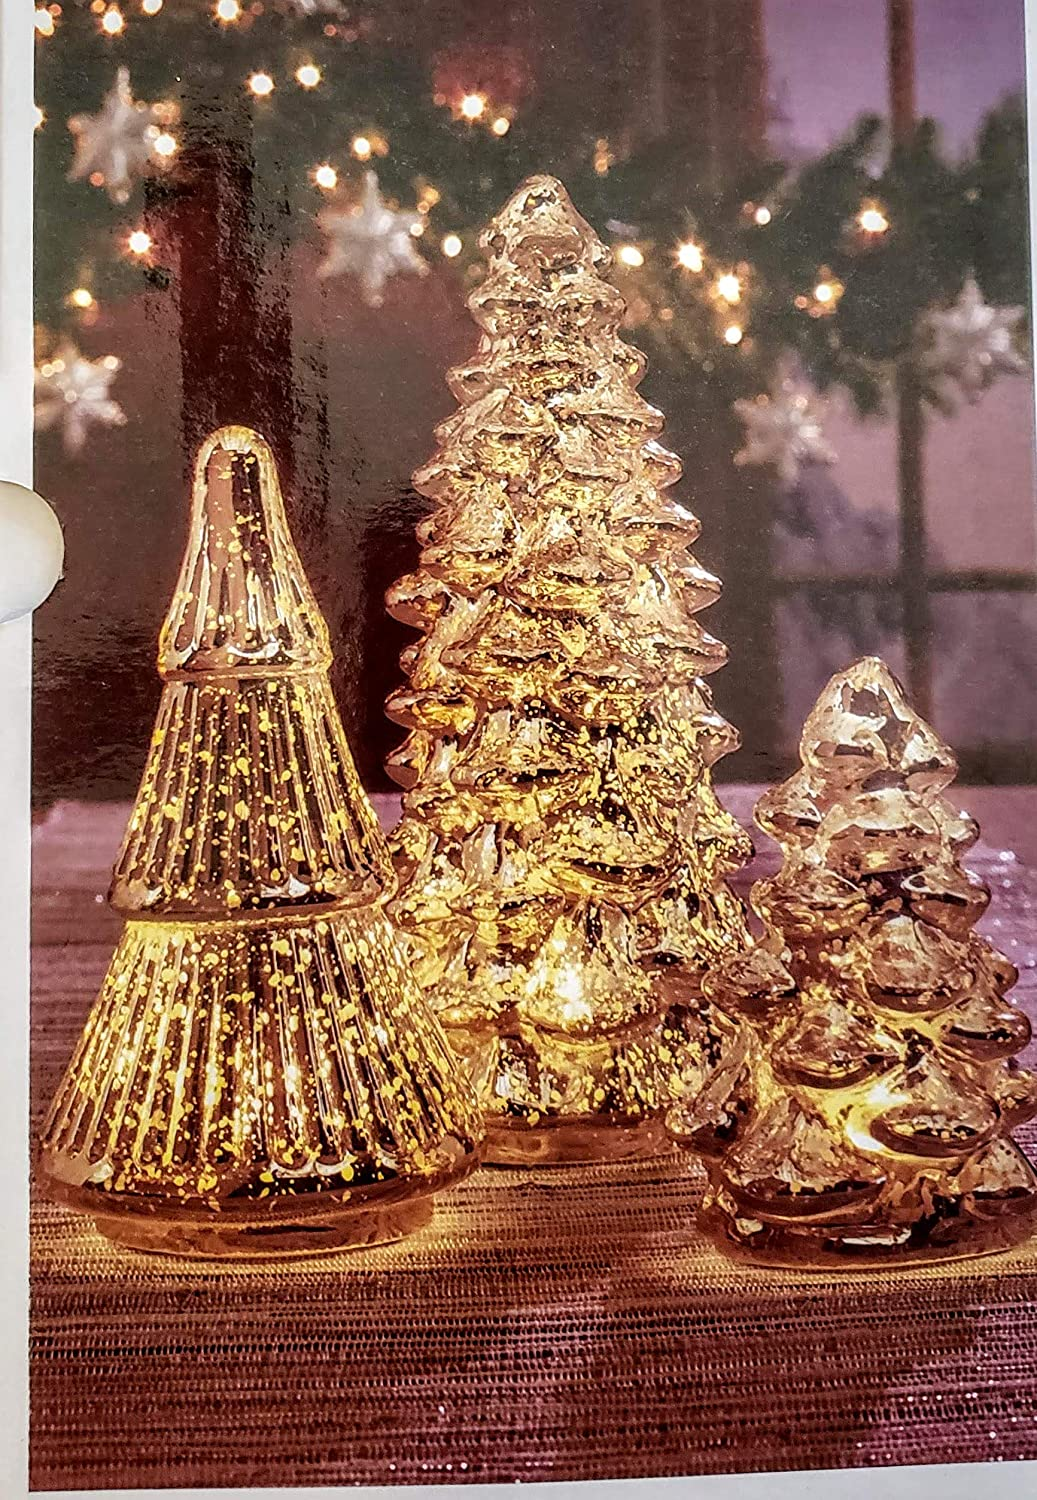 Buy Gold Led 3 Piece Mercury Glass Christmas Tree Set With Daily Auto Timer Online At Low Prices In India Amazon In